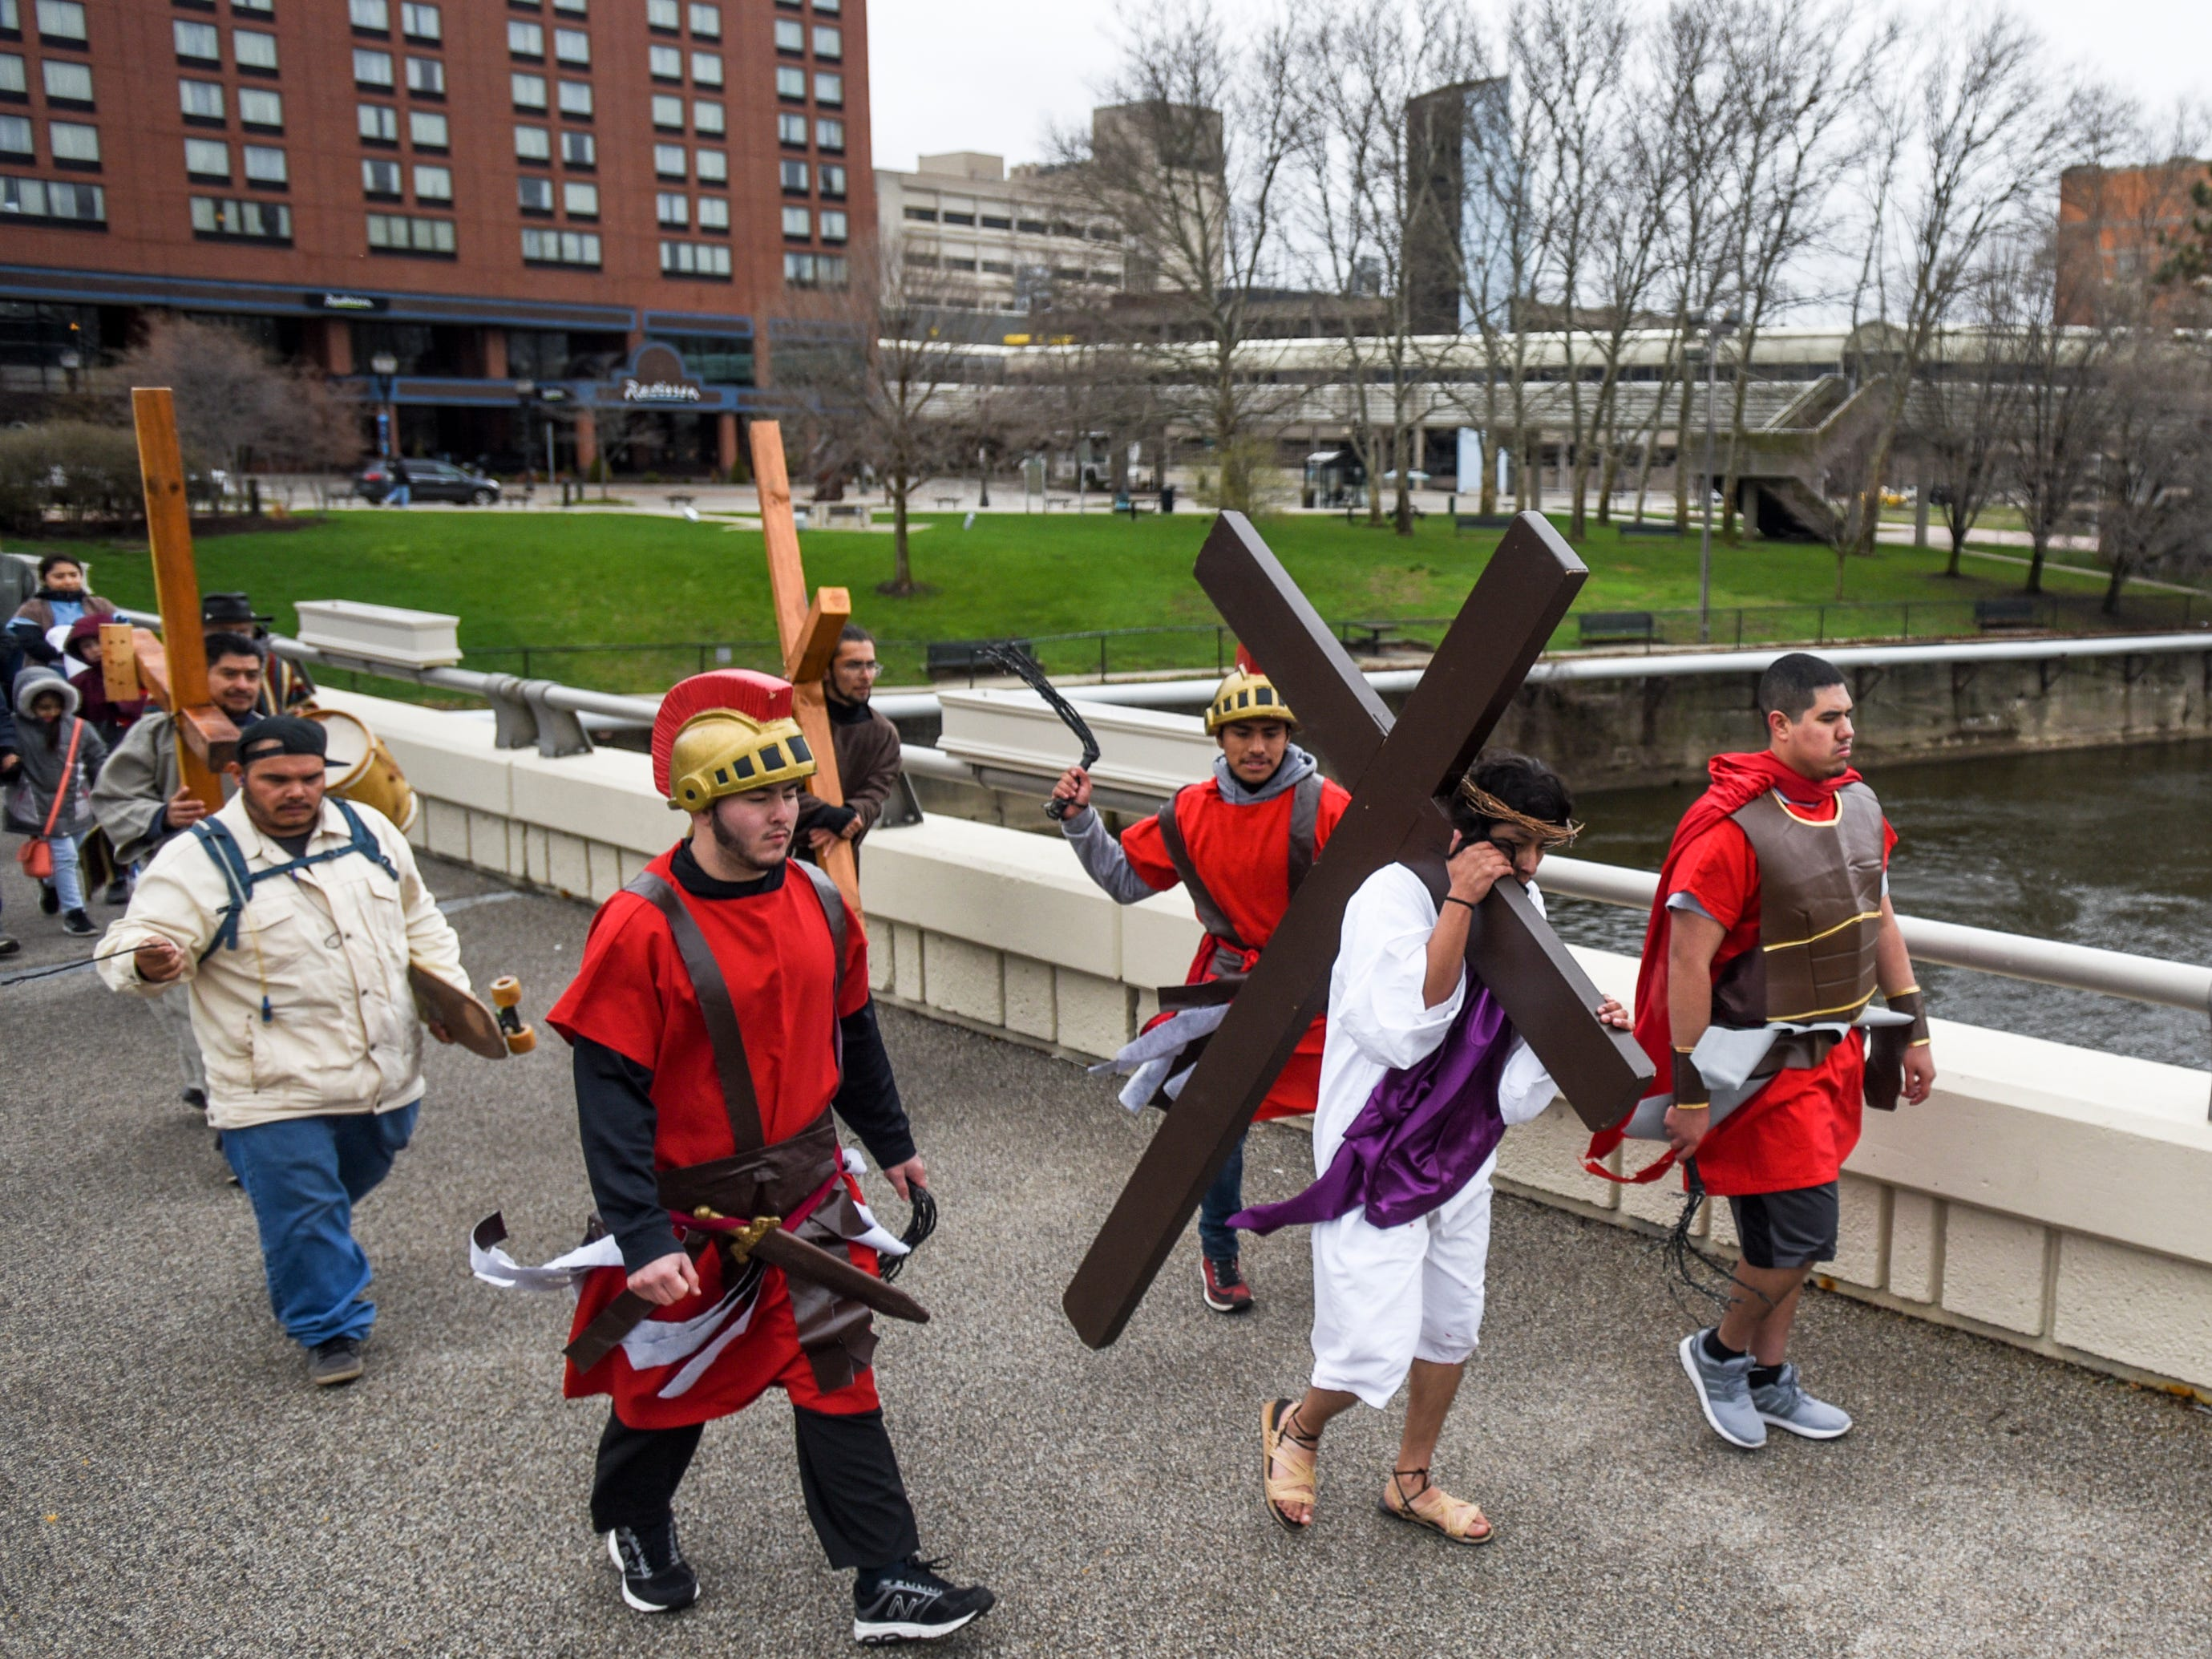 """David Ponce, portraying Jesus, carries a cross through downtown Lansing as part of  Cristo Rey's """"Stations of the Cross,"""" Friday, April 19, 2019.  The service started on the steps of the Capitol with the reenactment of Jesus being condemned to death and concluded at the Cristo Rey Community Center with the crucifixion followed by a Good Friday service."""